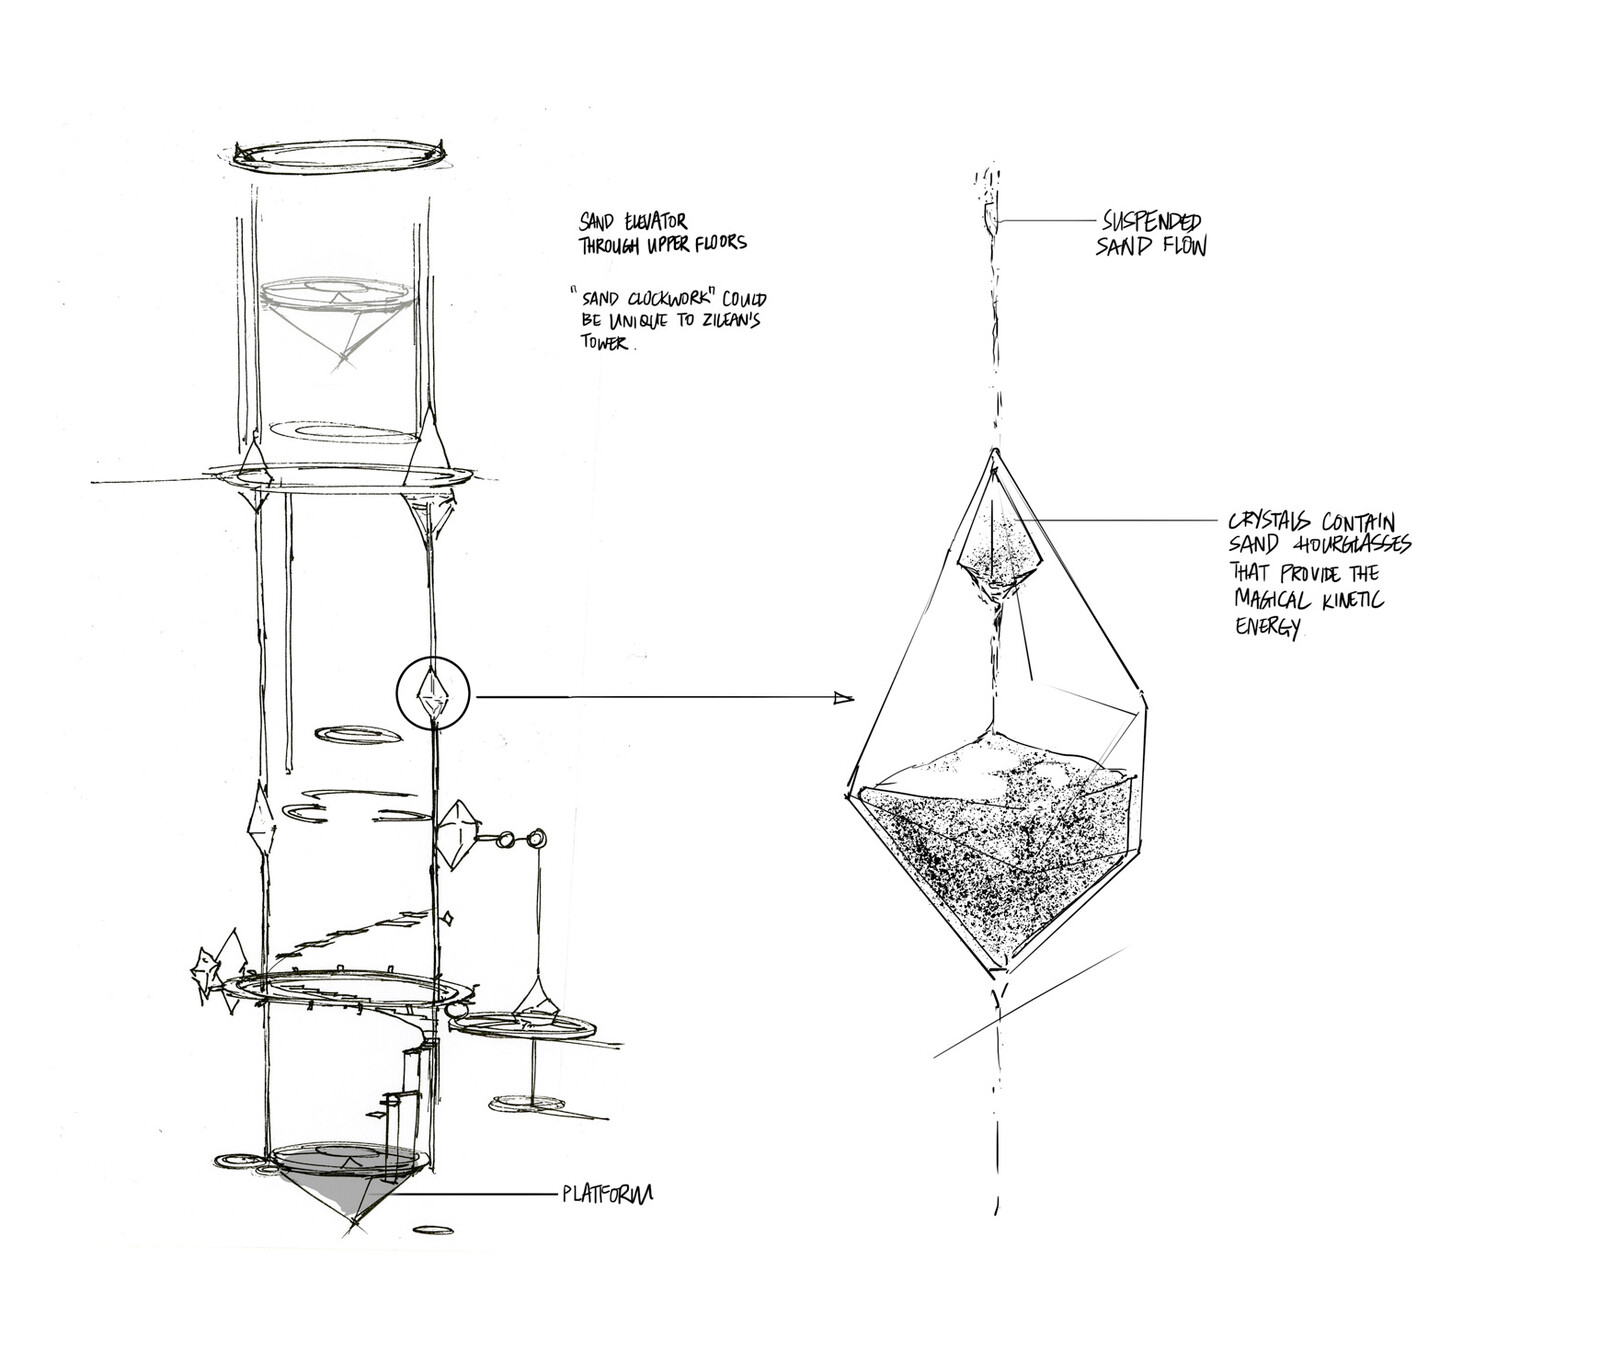 Ideation scribbles for a crystal hourglass powering a sand elevator up and down throughout the tower.